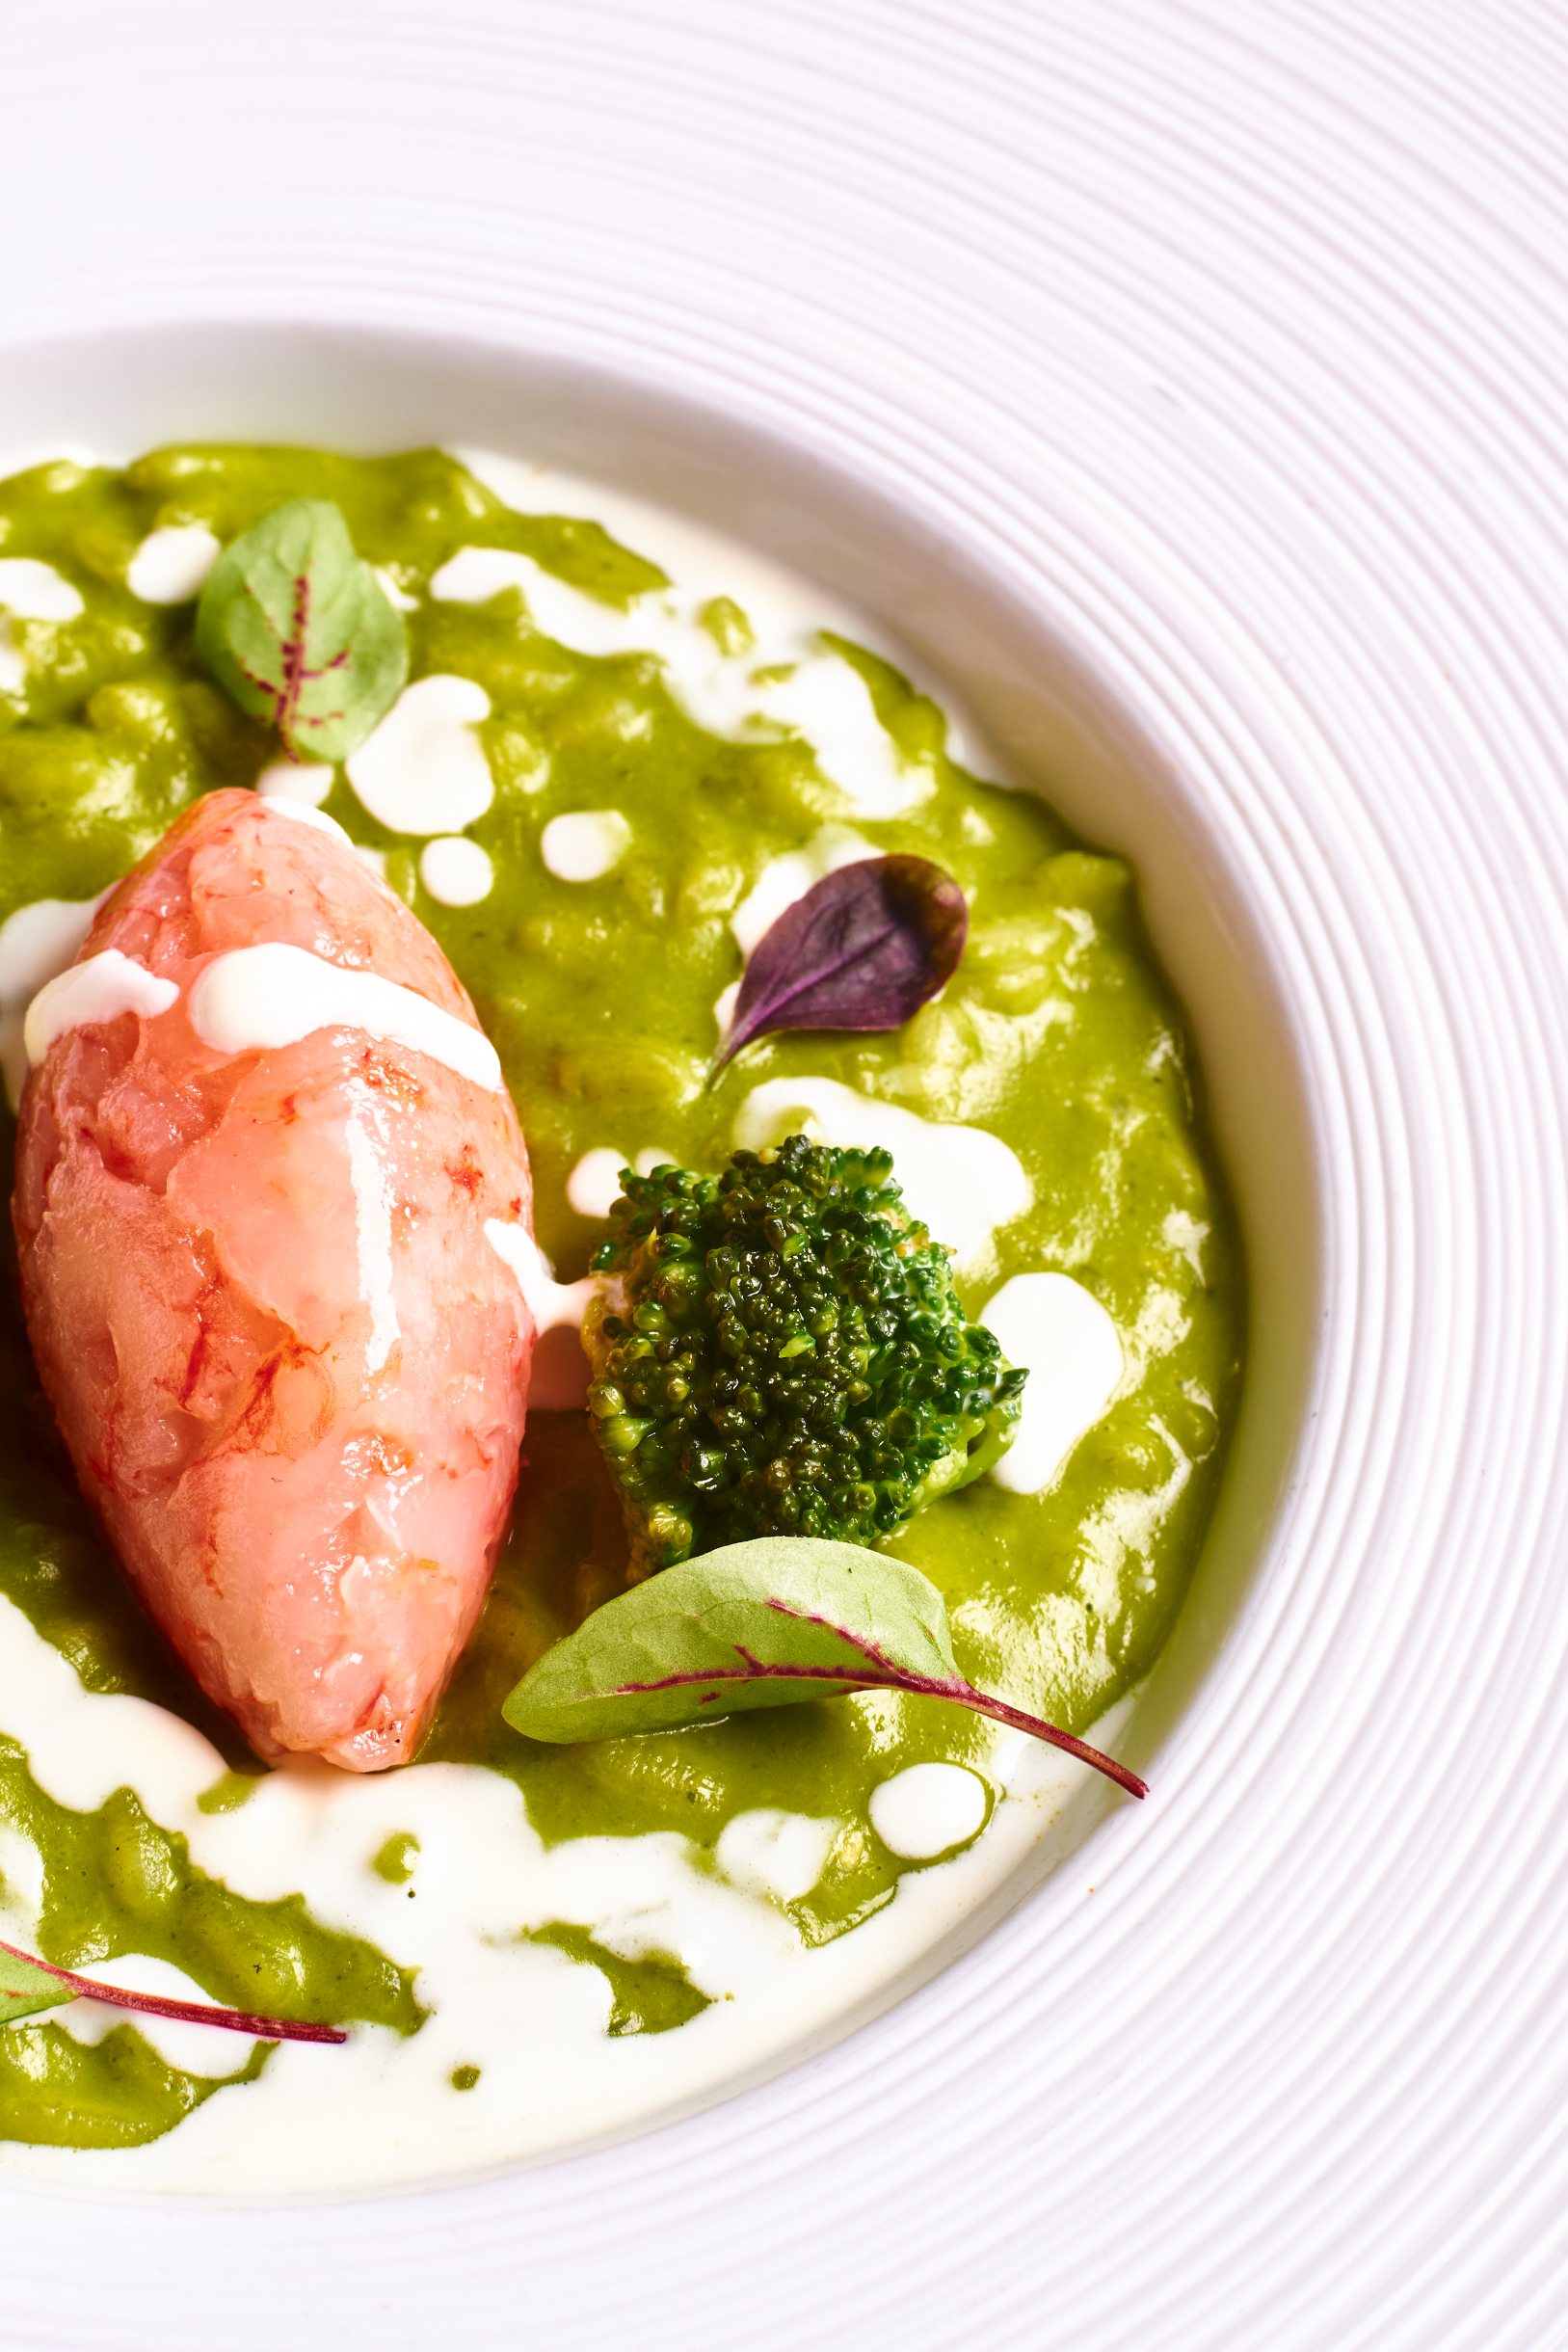 Risotto with mozzarella cream, broccoli and prawns